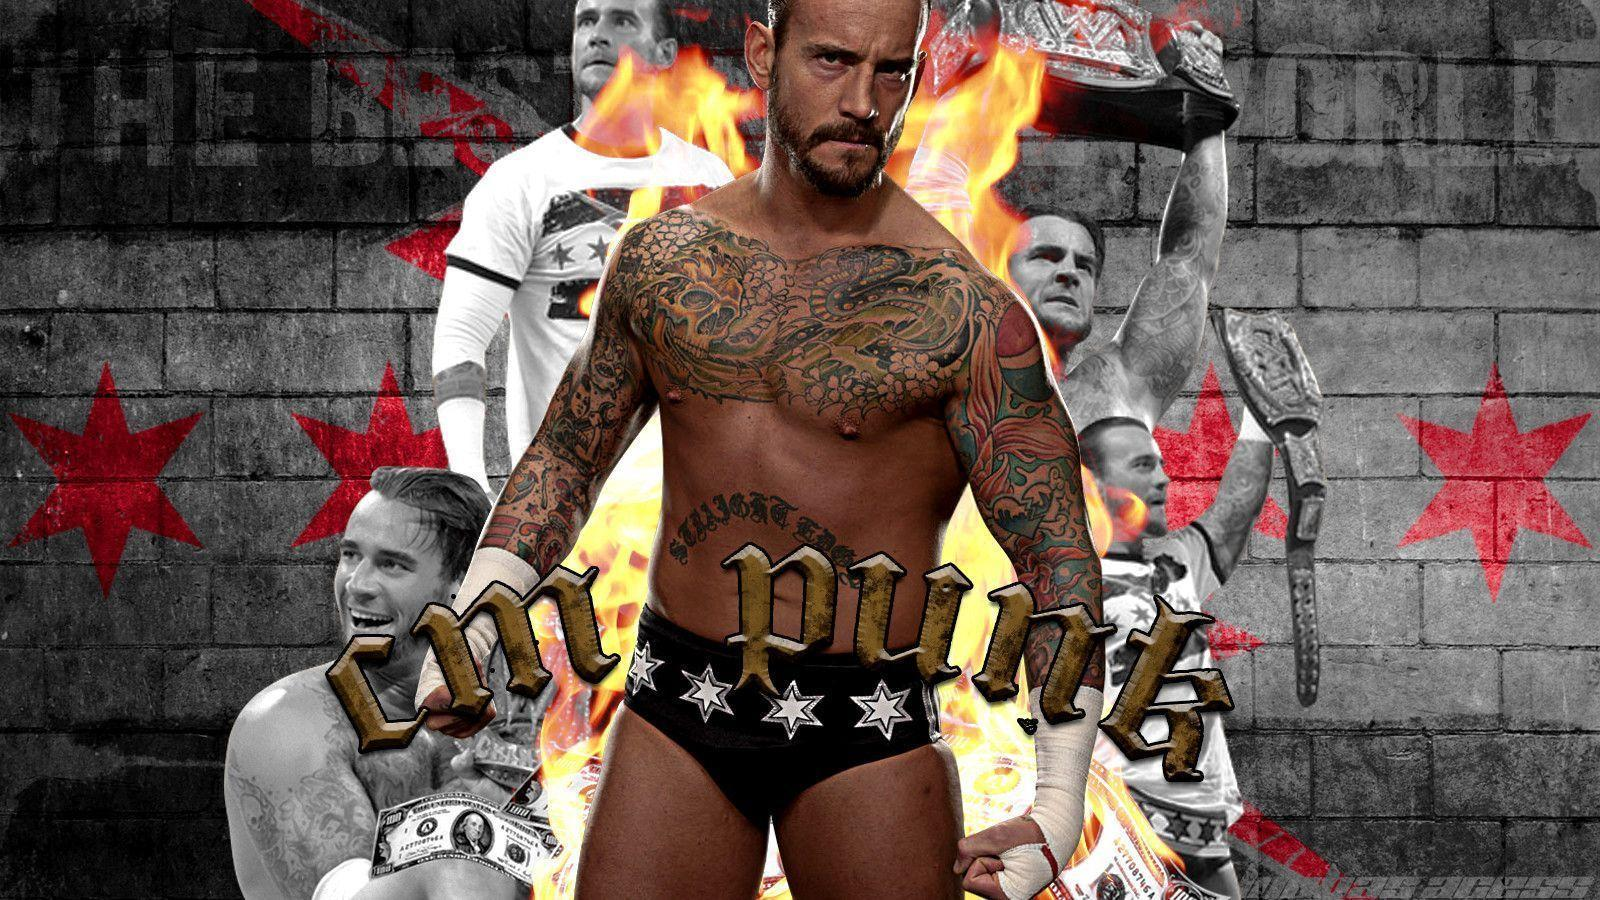 Wwe cm punk wallpapers 2015 wallpaper cave cm punk hd wallpapers 2015 free hd download voltagebd Choice Image